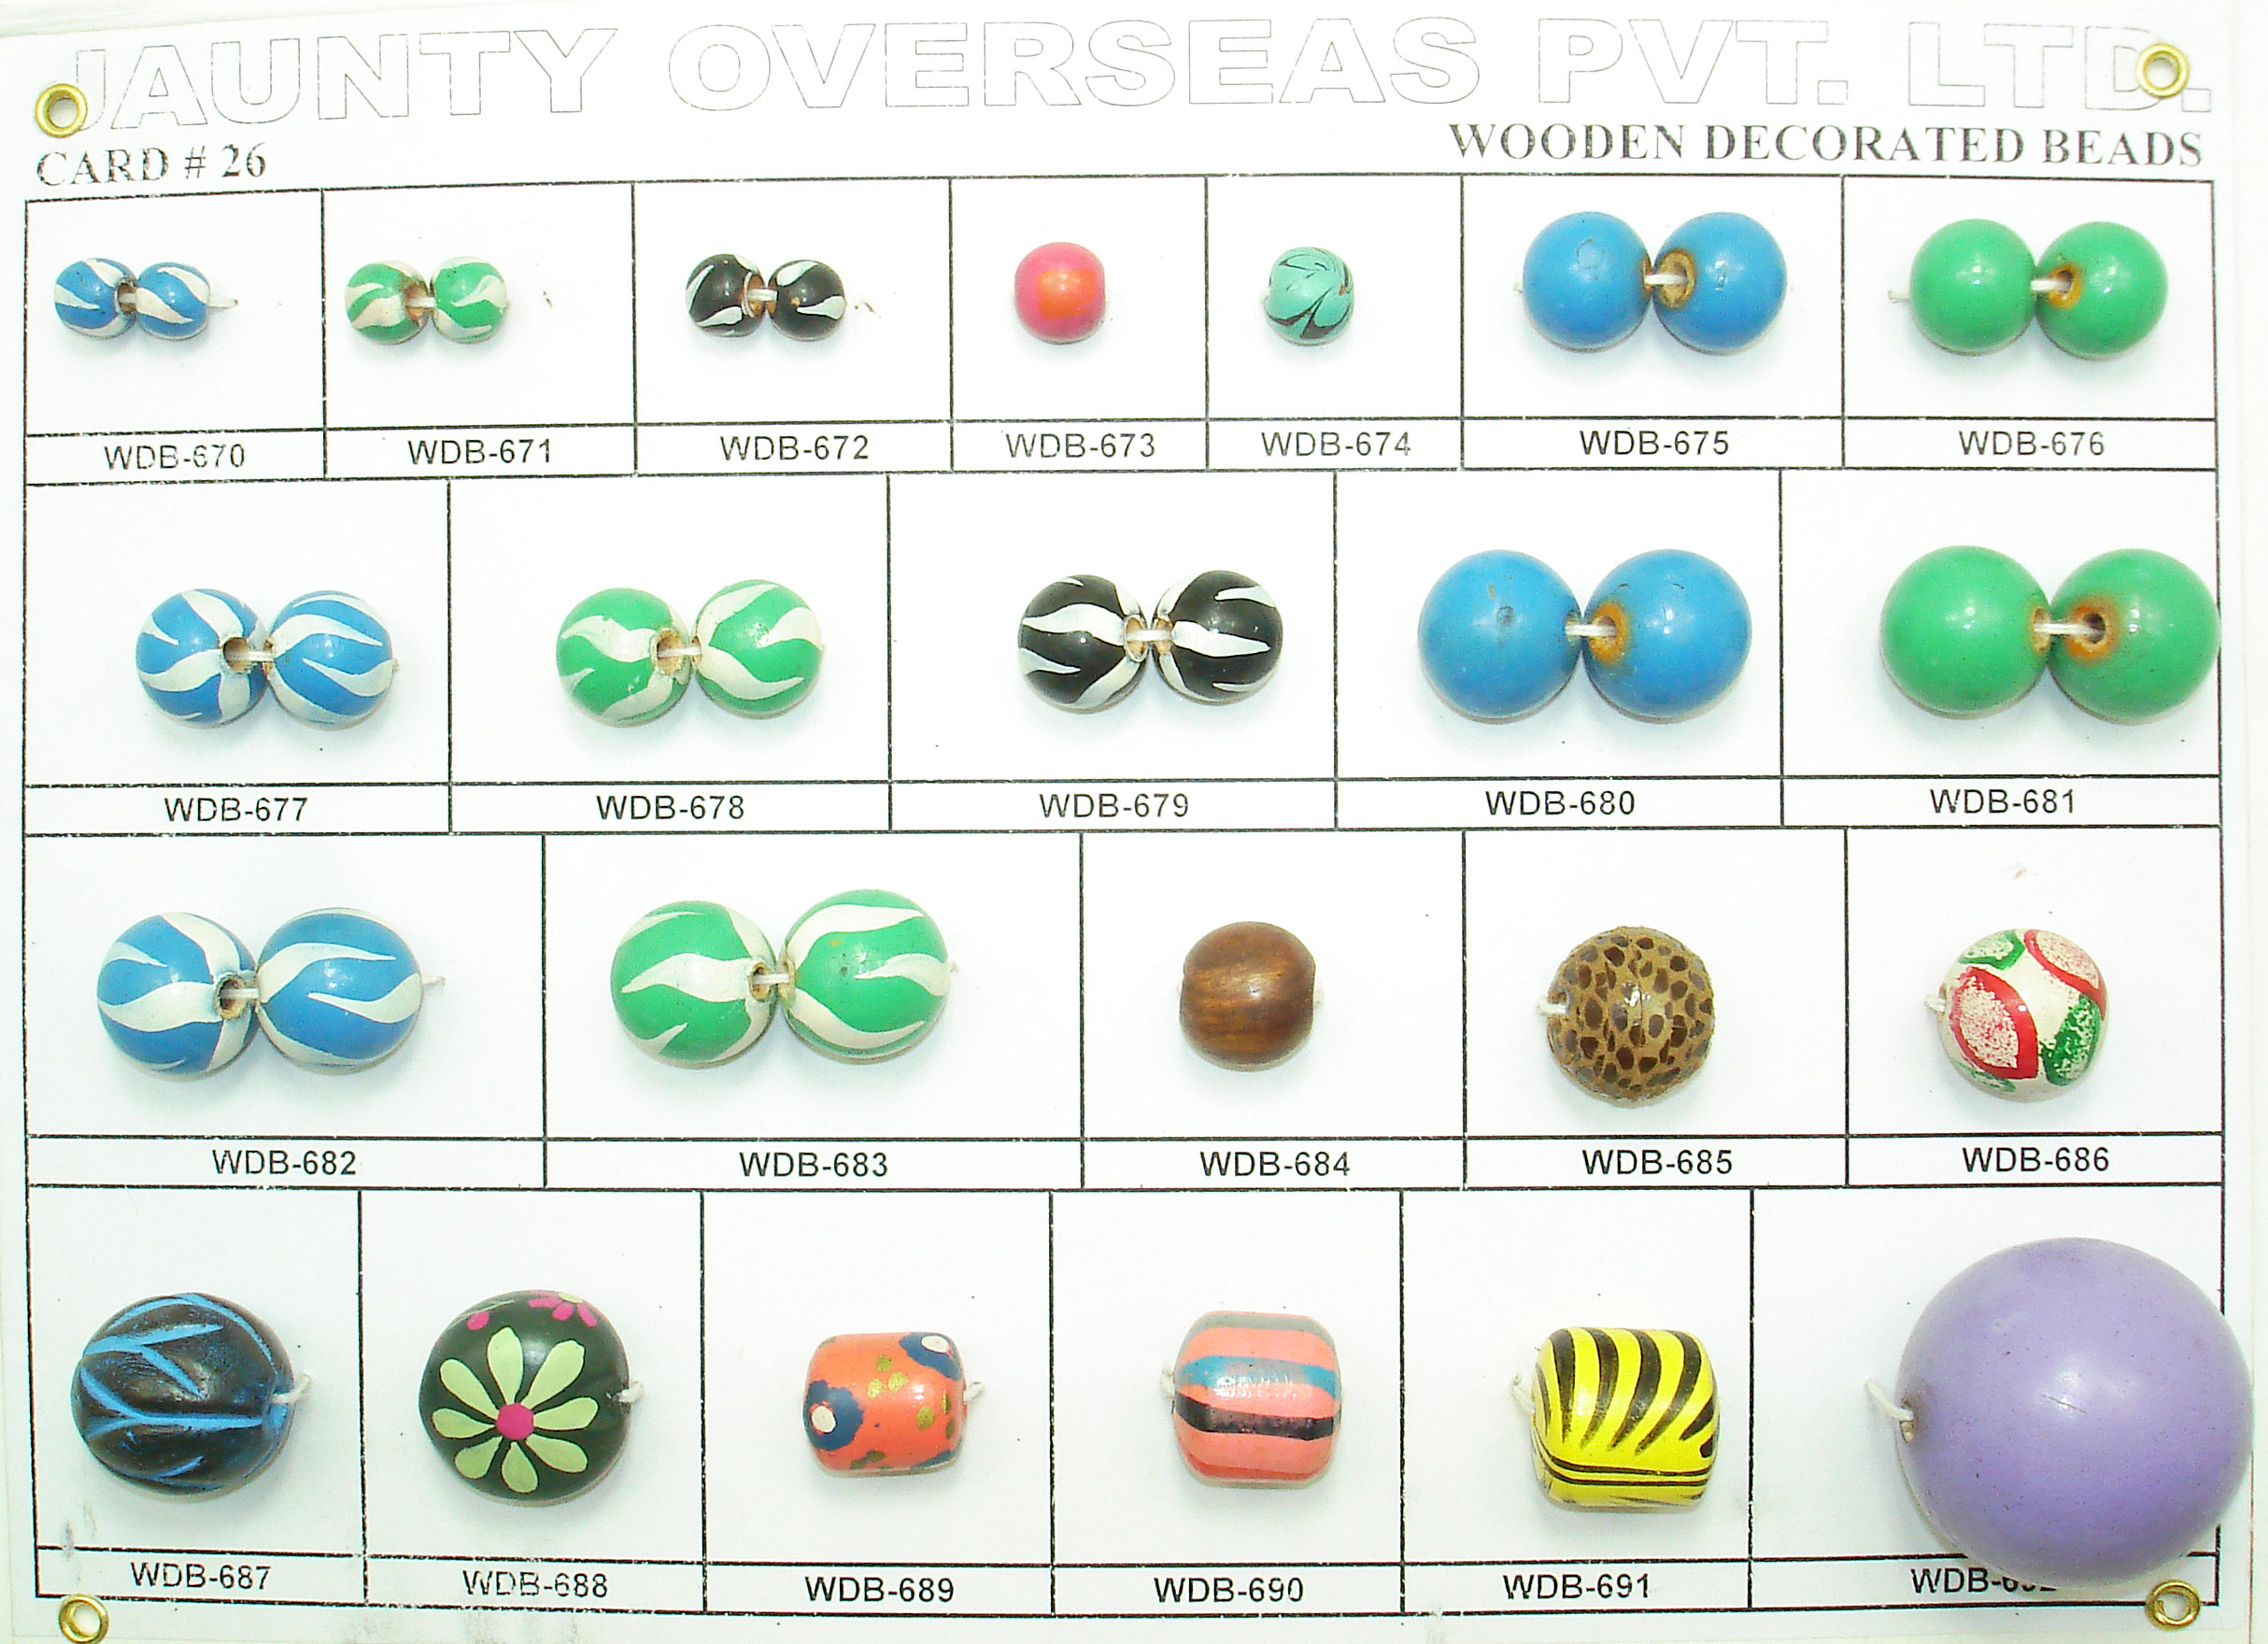 wooden beads cards